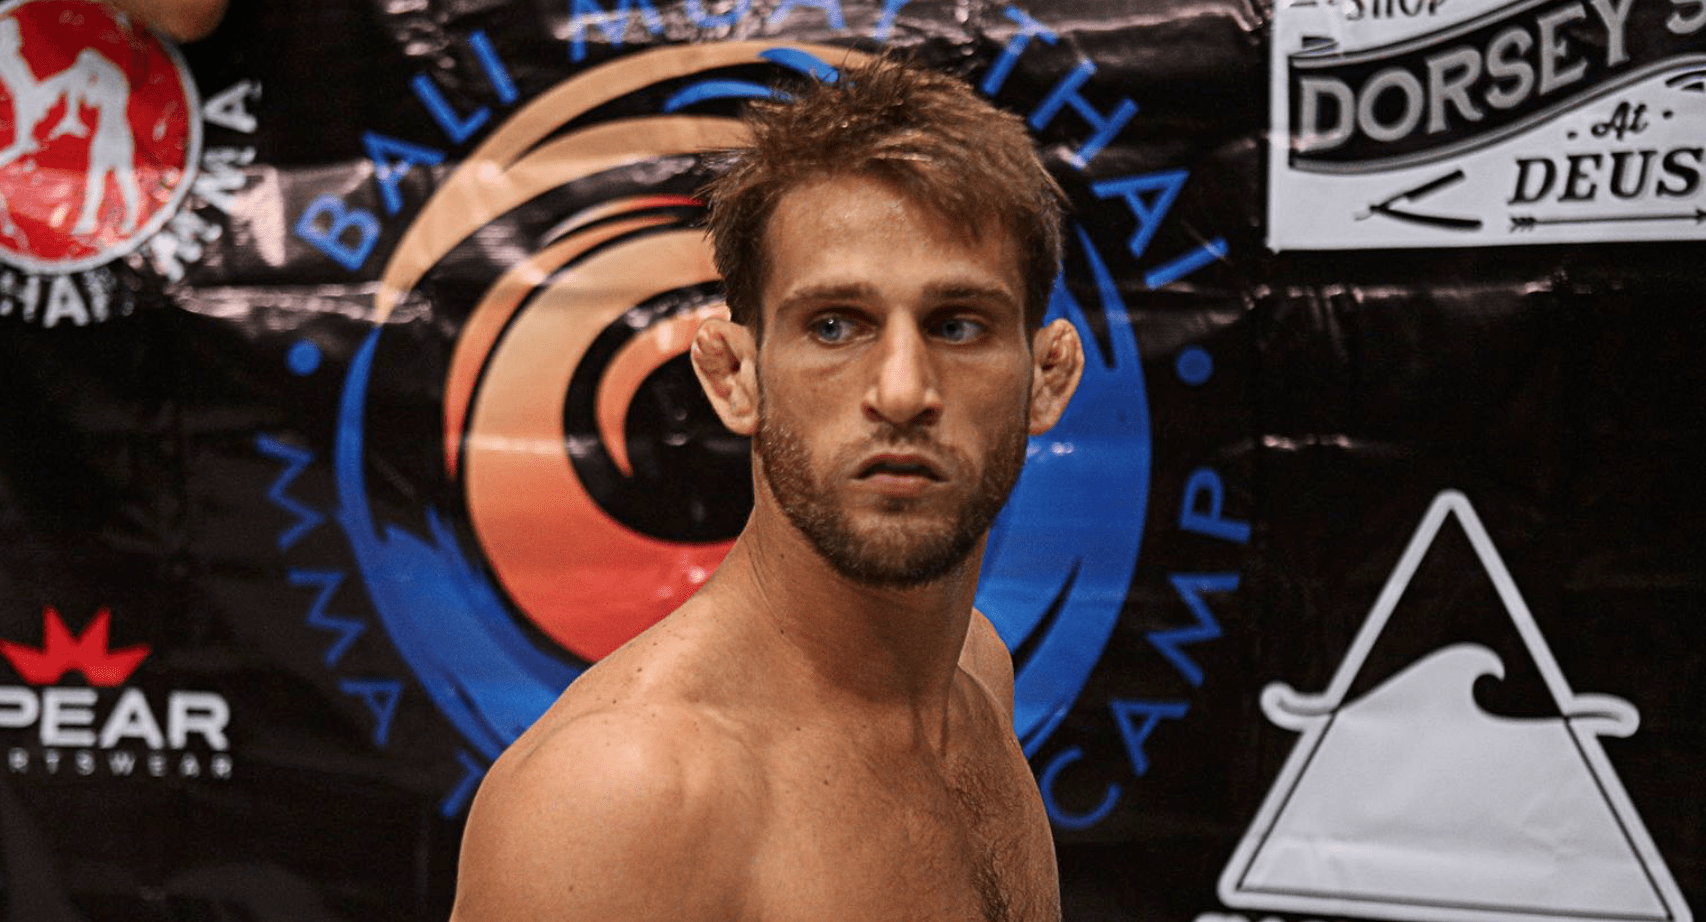 Andrew Leone Out Of Bout With Danny Kingad At ONE: A New Era